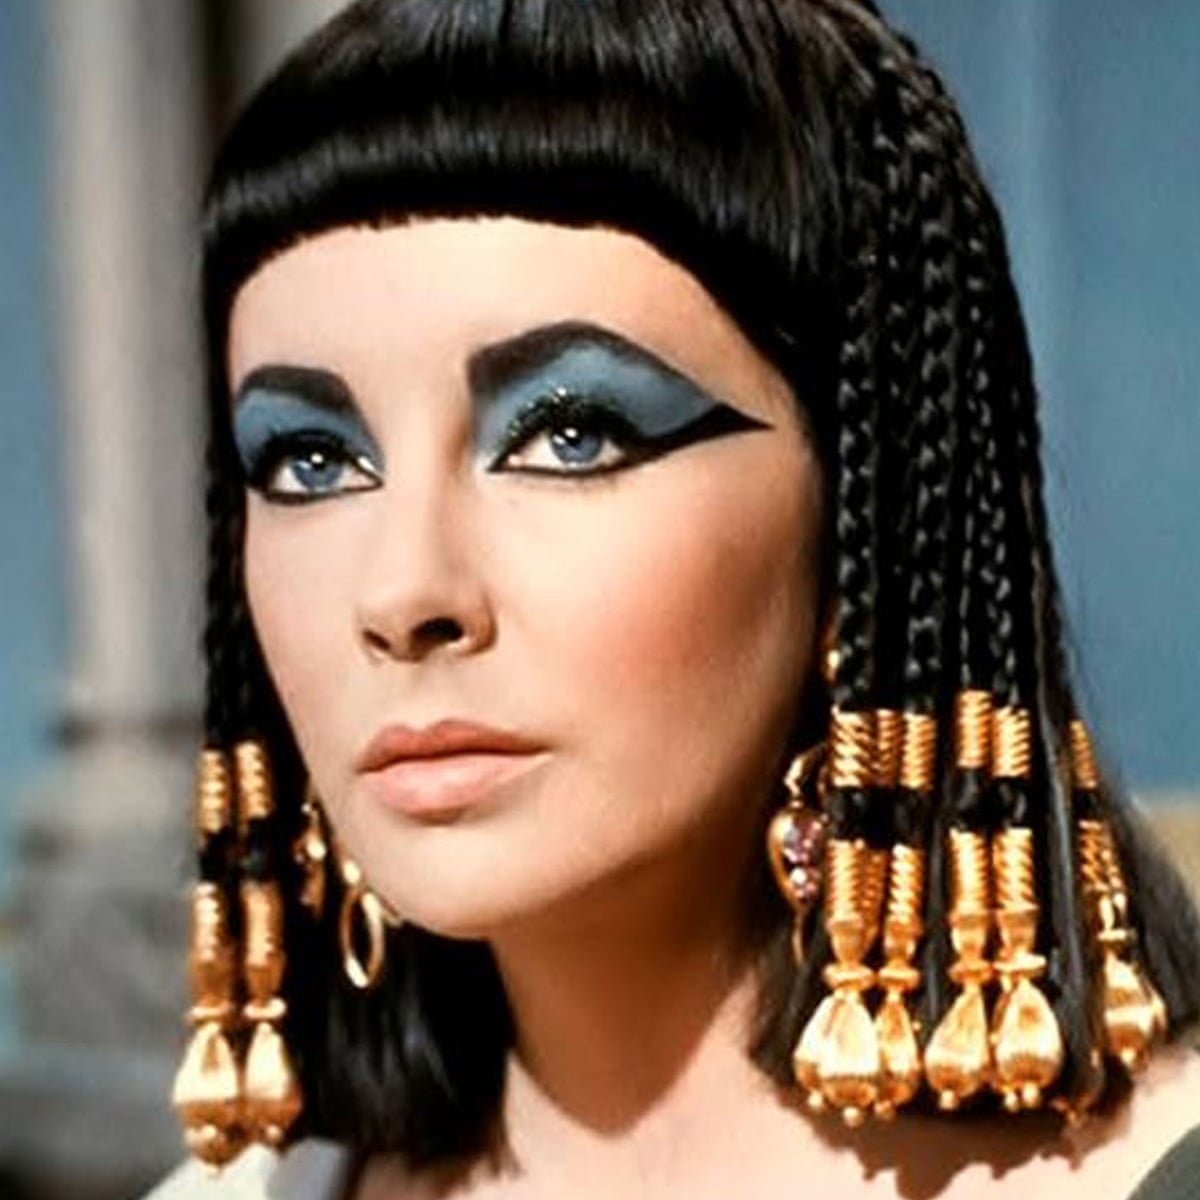 Cleopatra Had A Big Beautiful Nose So Let S See It Onscreen Body Image The Guardian